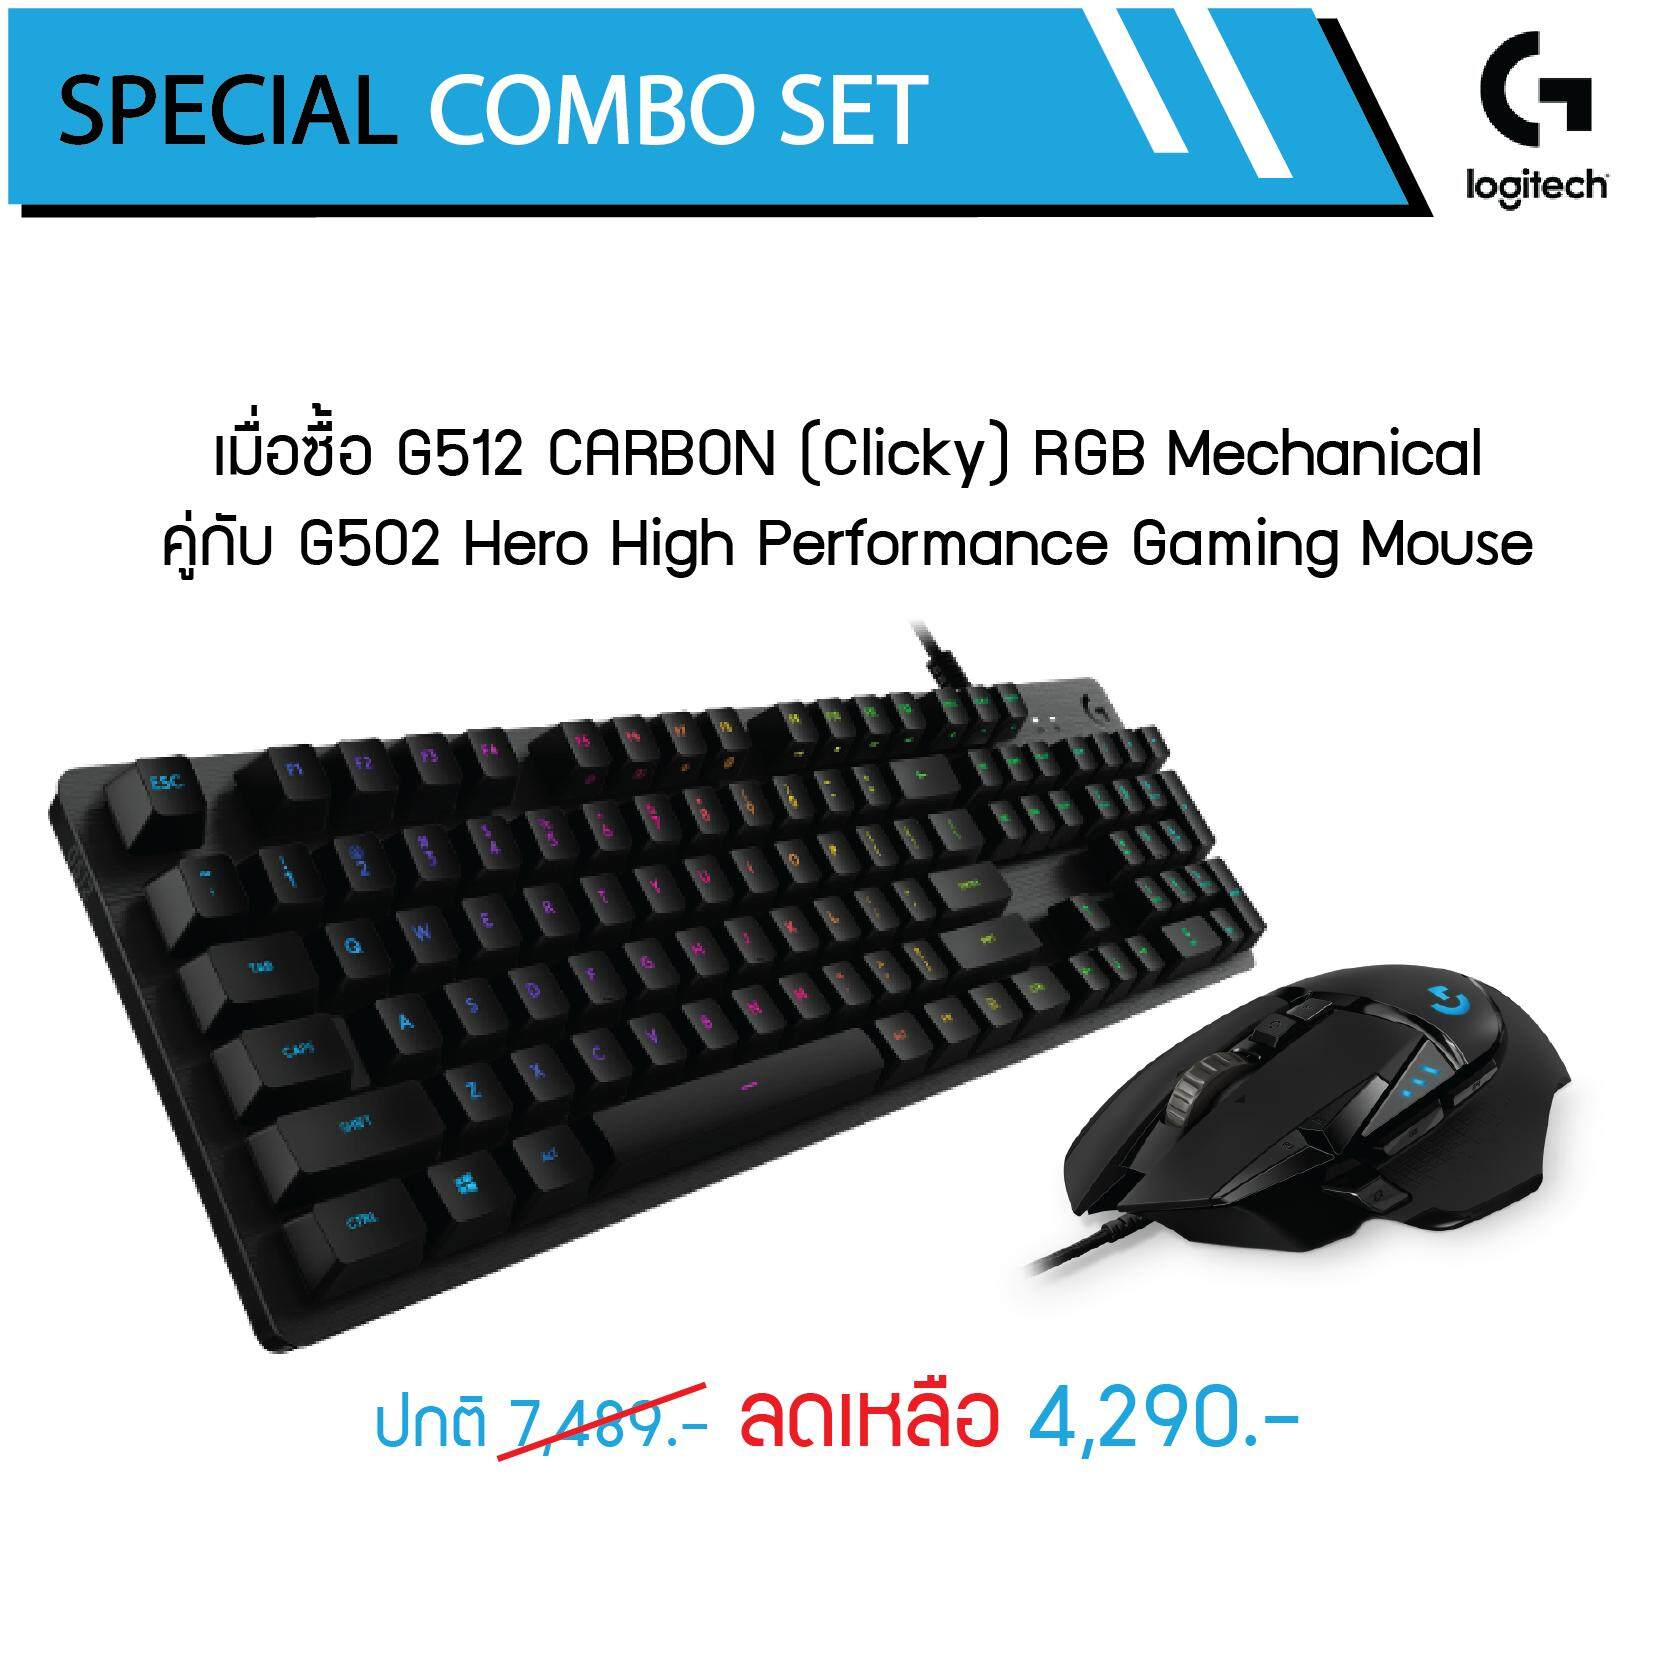 [SPECIAL COMBO SET] Logitech G512 RGB Mechanical Carbon Clicky Gaming Keyboard คู่กับ G502 Hero High Performance Gaming Mouse